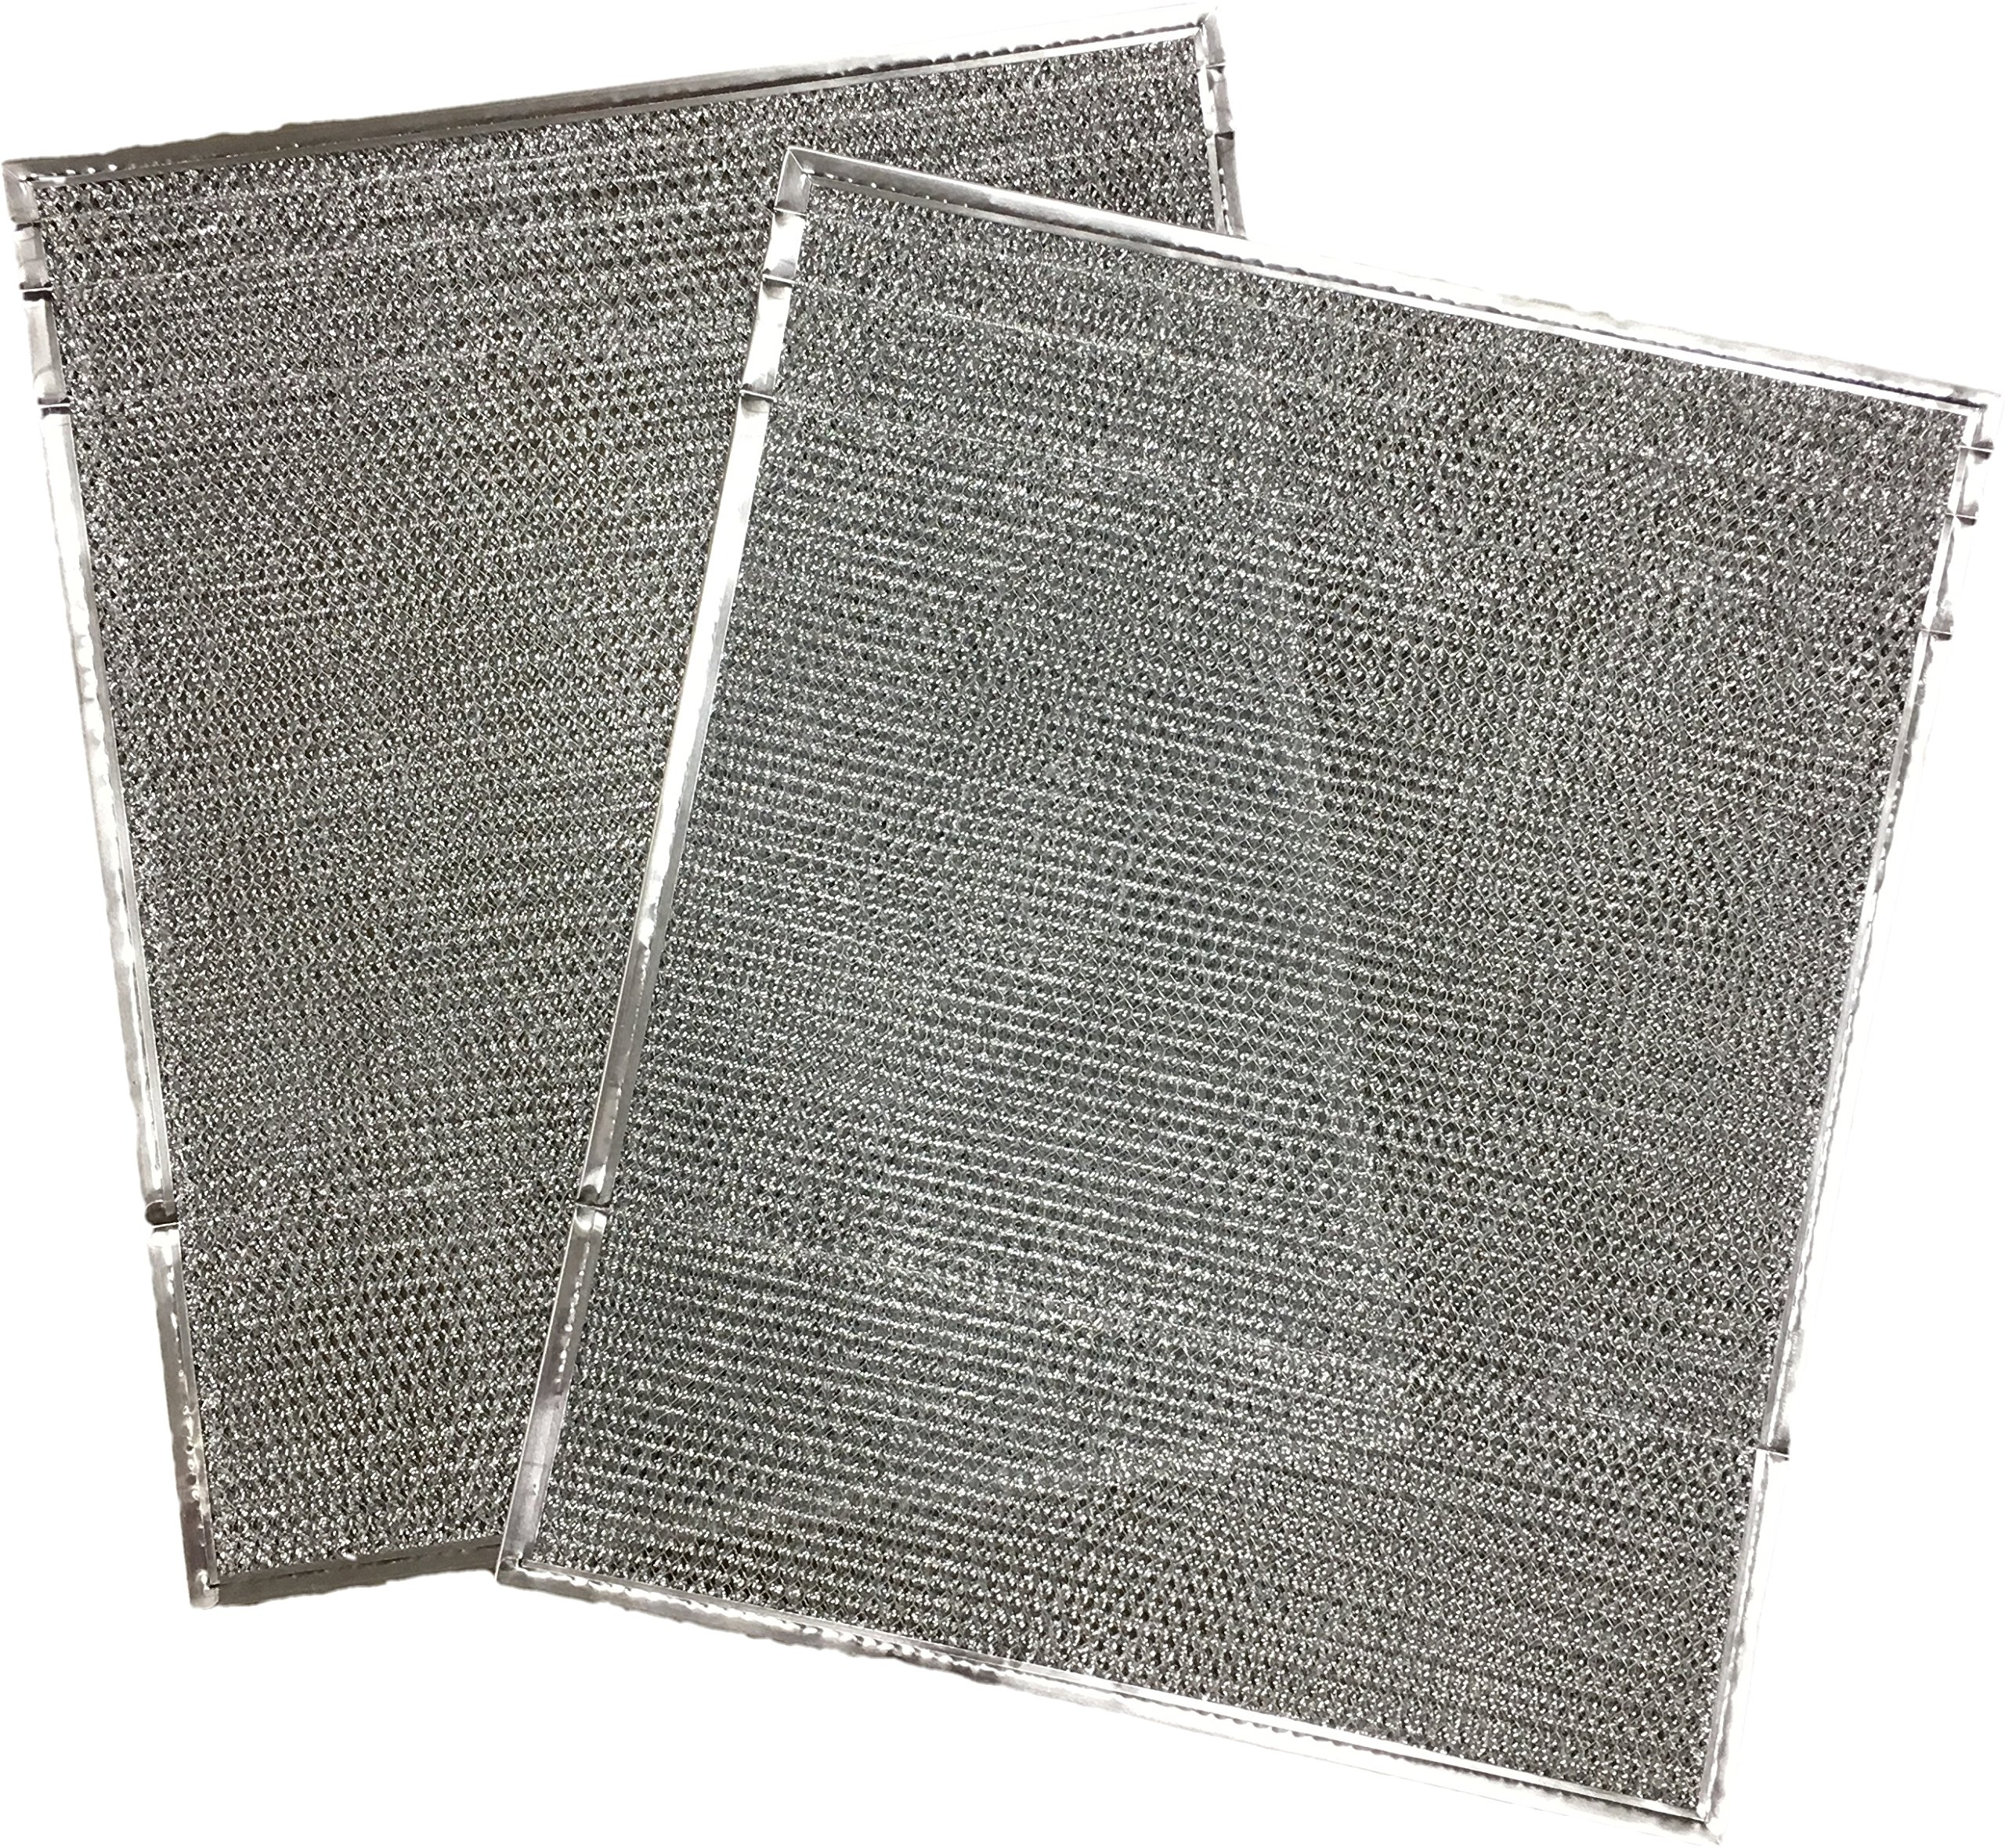 Duraflow Filtration 917763 Metal Mesh Filter, Fits Nordyne 917763 A Coils, One Pair, 19 H, 0.125 W,